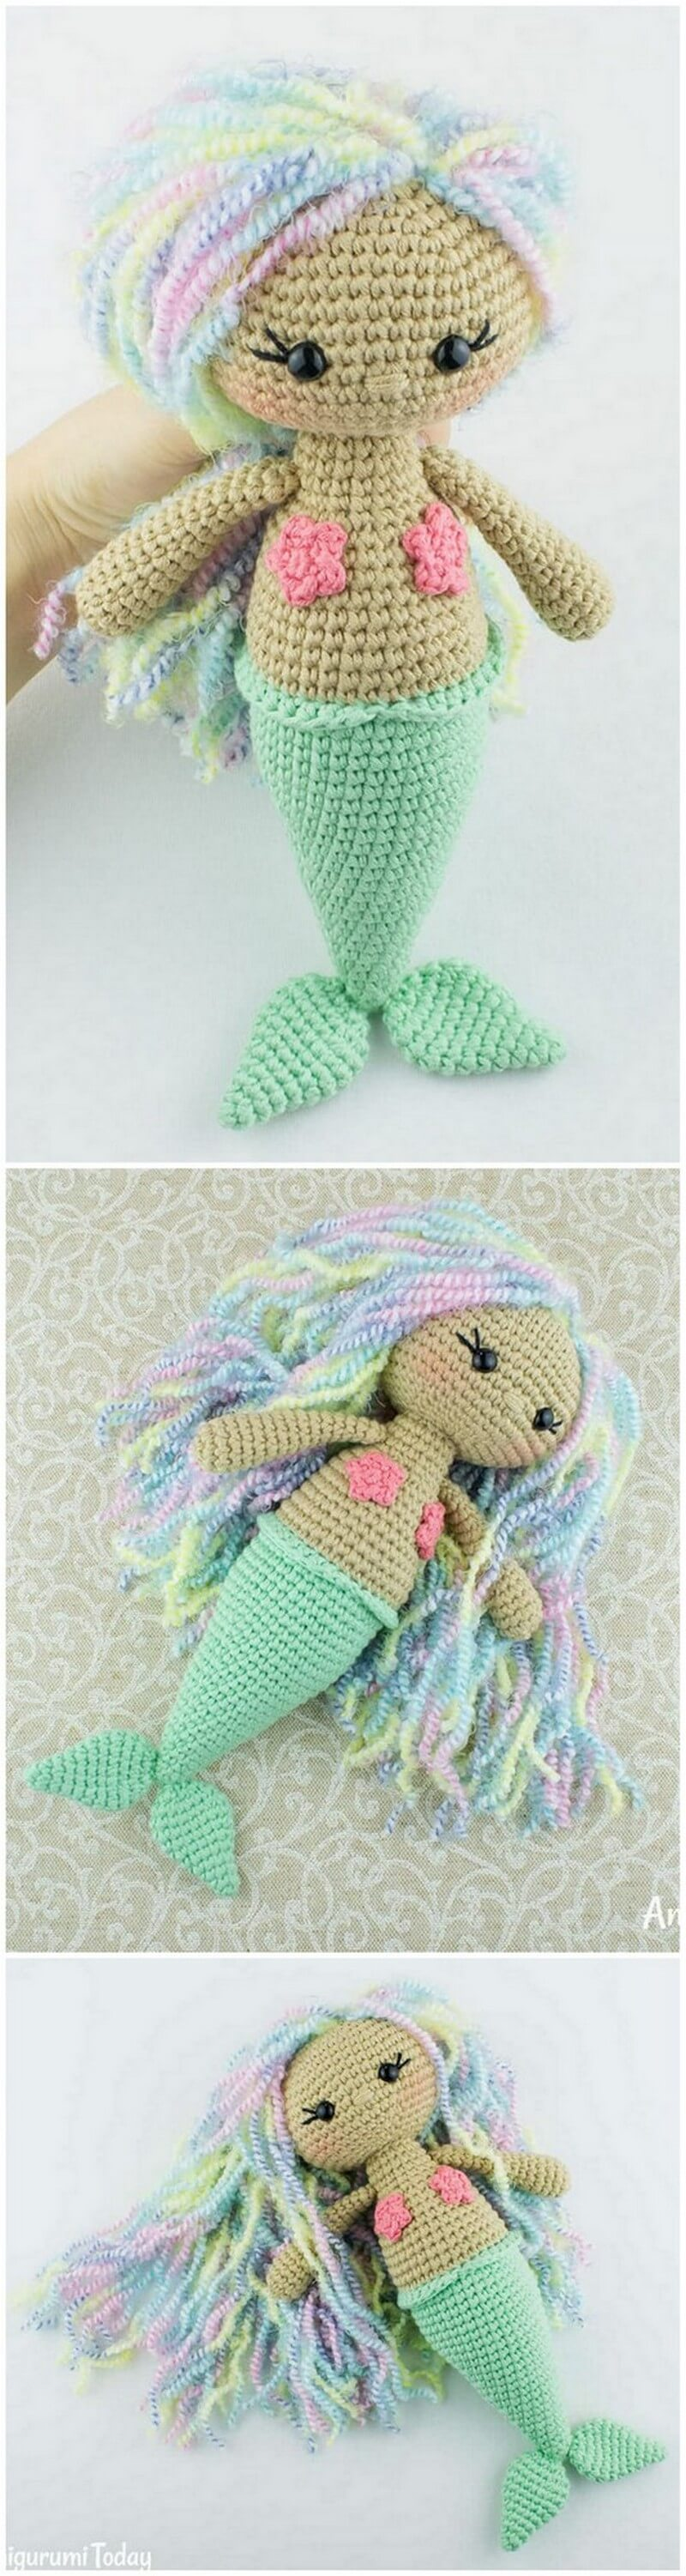 Crochet Amigurumi Doll Pattern (40)